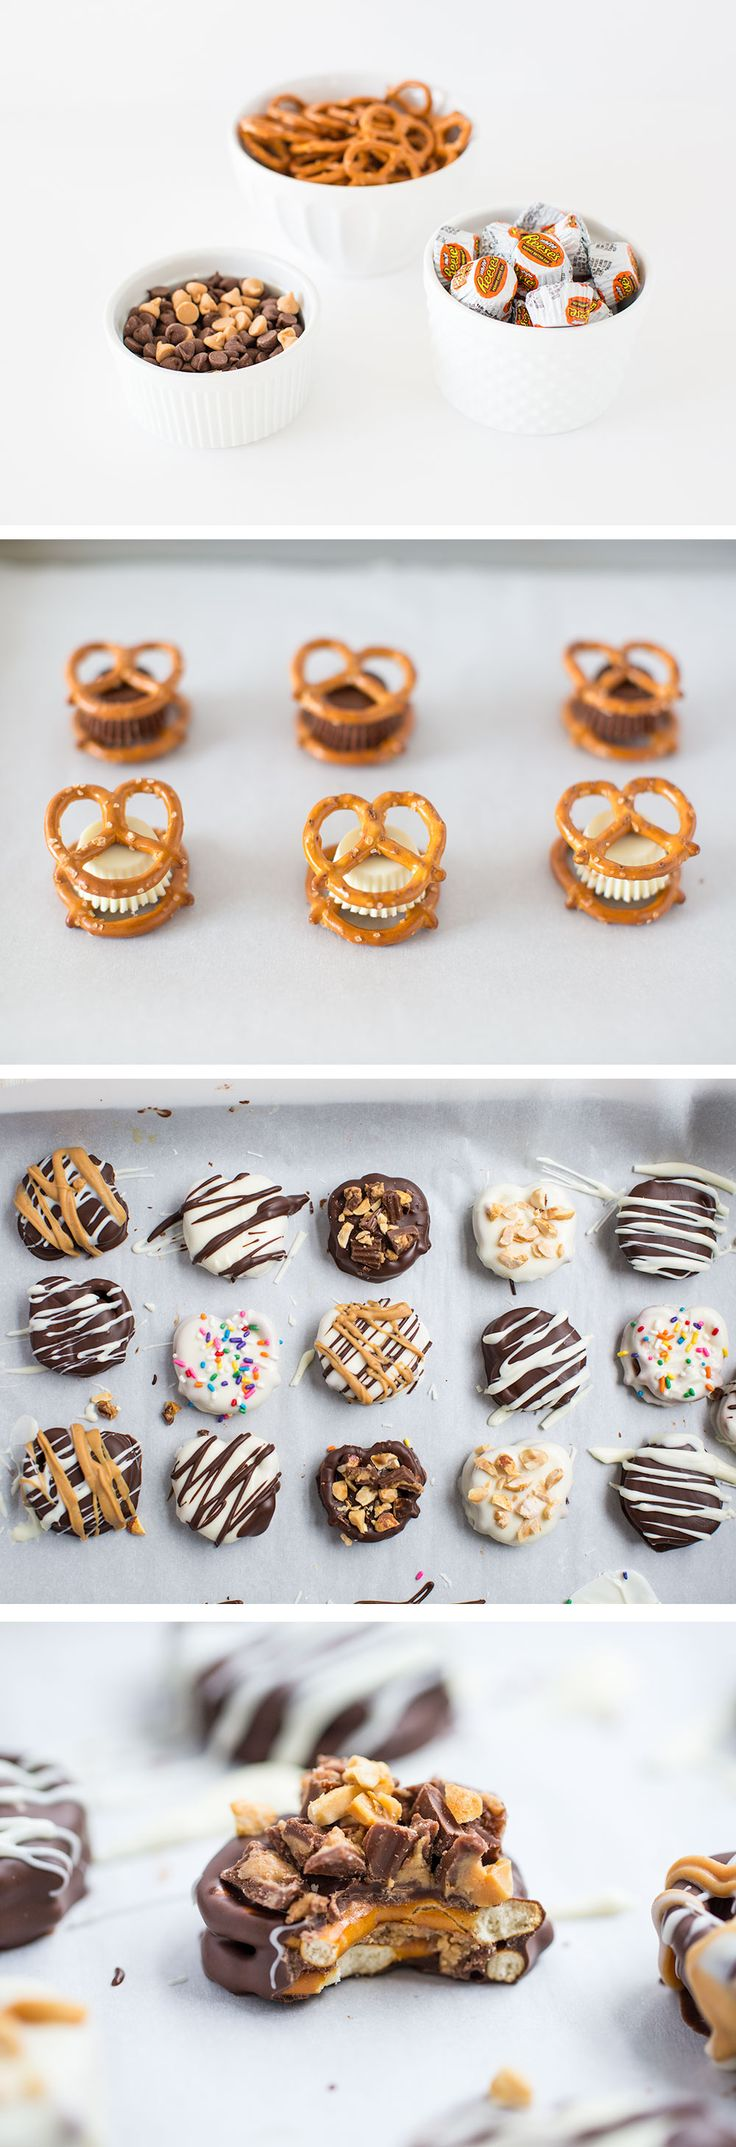 Food faith amp design thanksgiving goodies - Chocolate Dipped Reese S Pretzel Bites Only 3 Ingredients To Make These Delicious Treats They